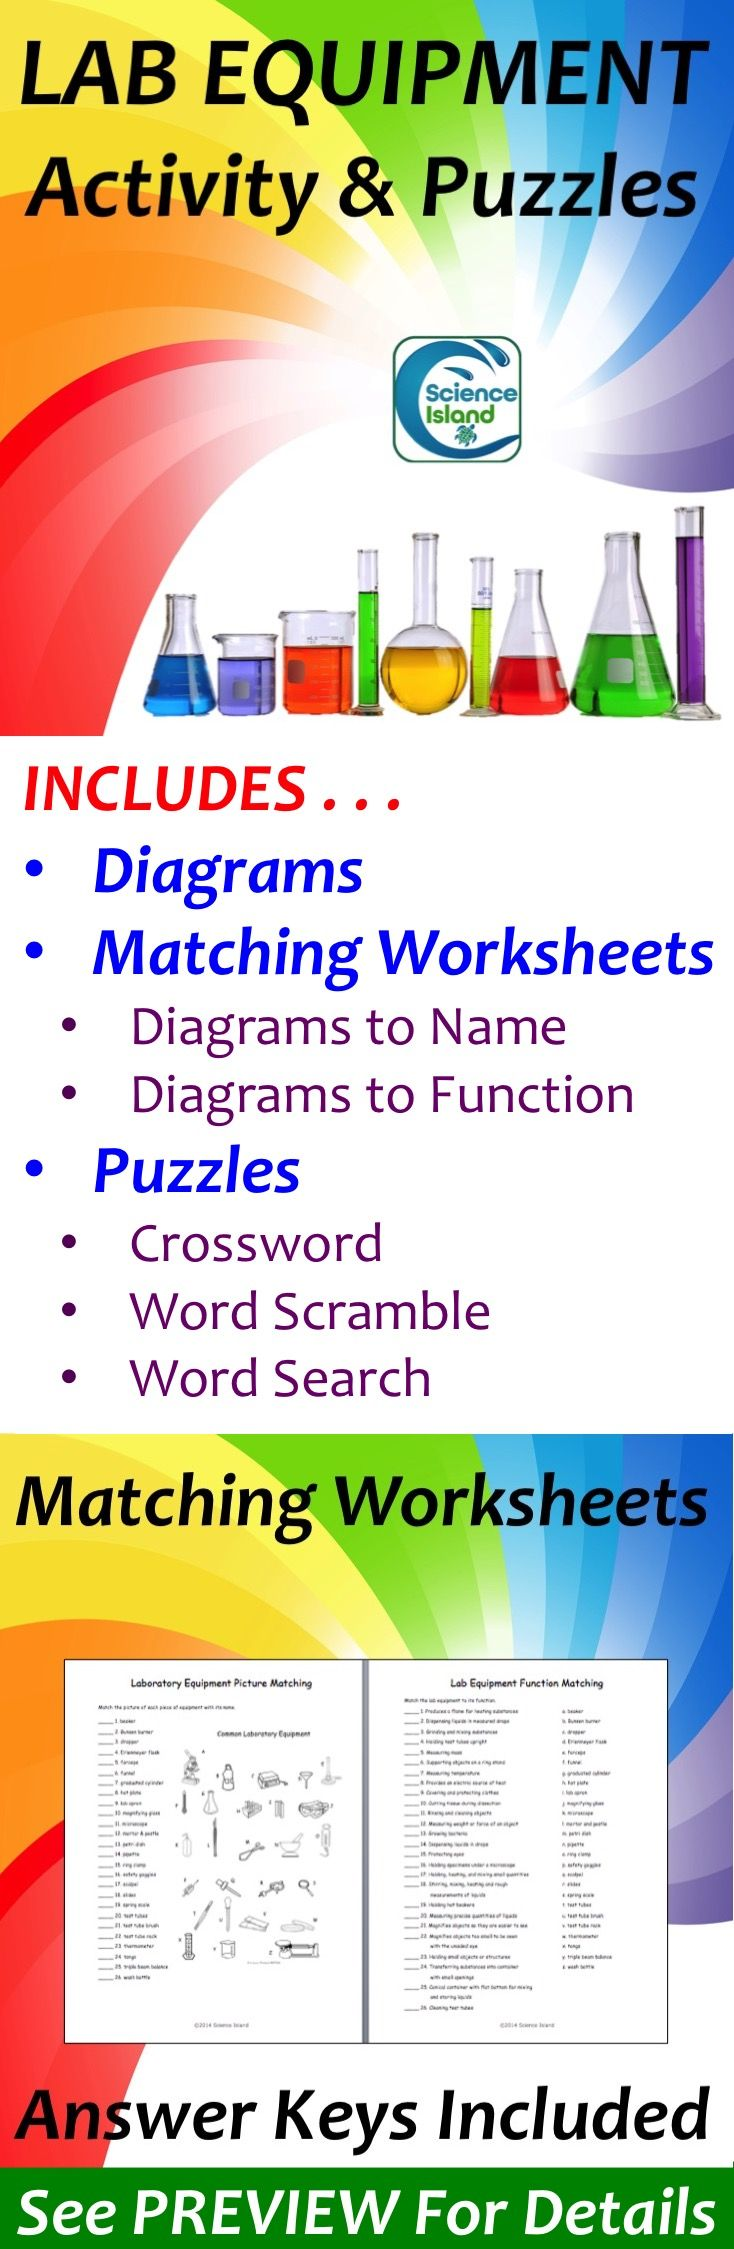 Addition Mad Minute Worksheets Pdf Lab Equipment Activity And Puzzles  Lab Equipment Word Search  Direct Object Pronouns Spanish Worksheet With Answers with Spanish Worksheets Middle School Word Includes Labeled And Lettered Diagrams Of Common Lab Equipment Matching  Worksheets To Assess Identification And Progressive Verb Tense Worksheet Word